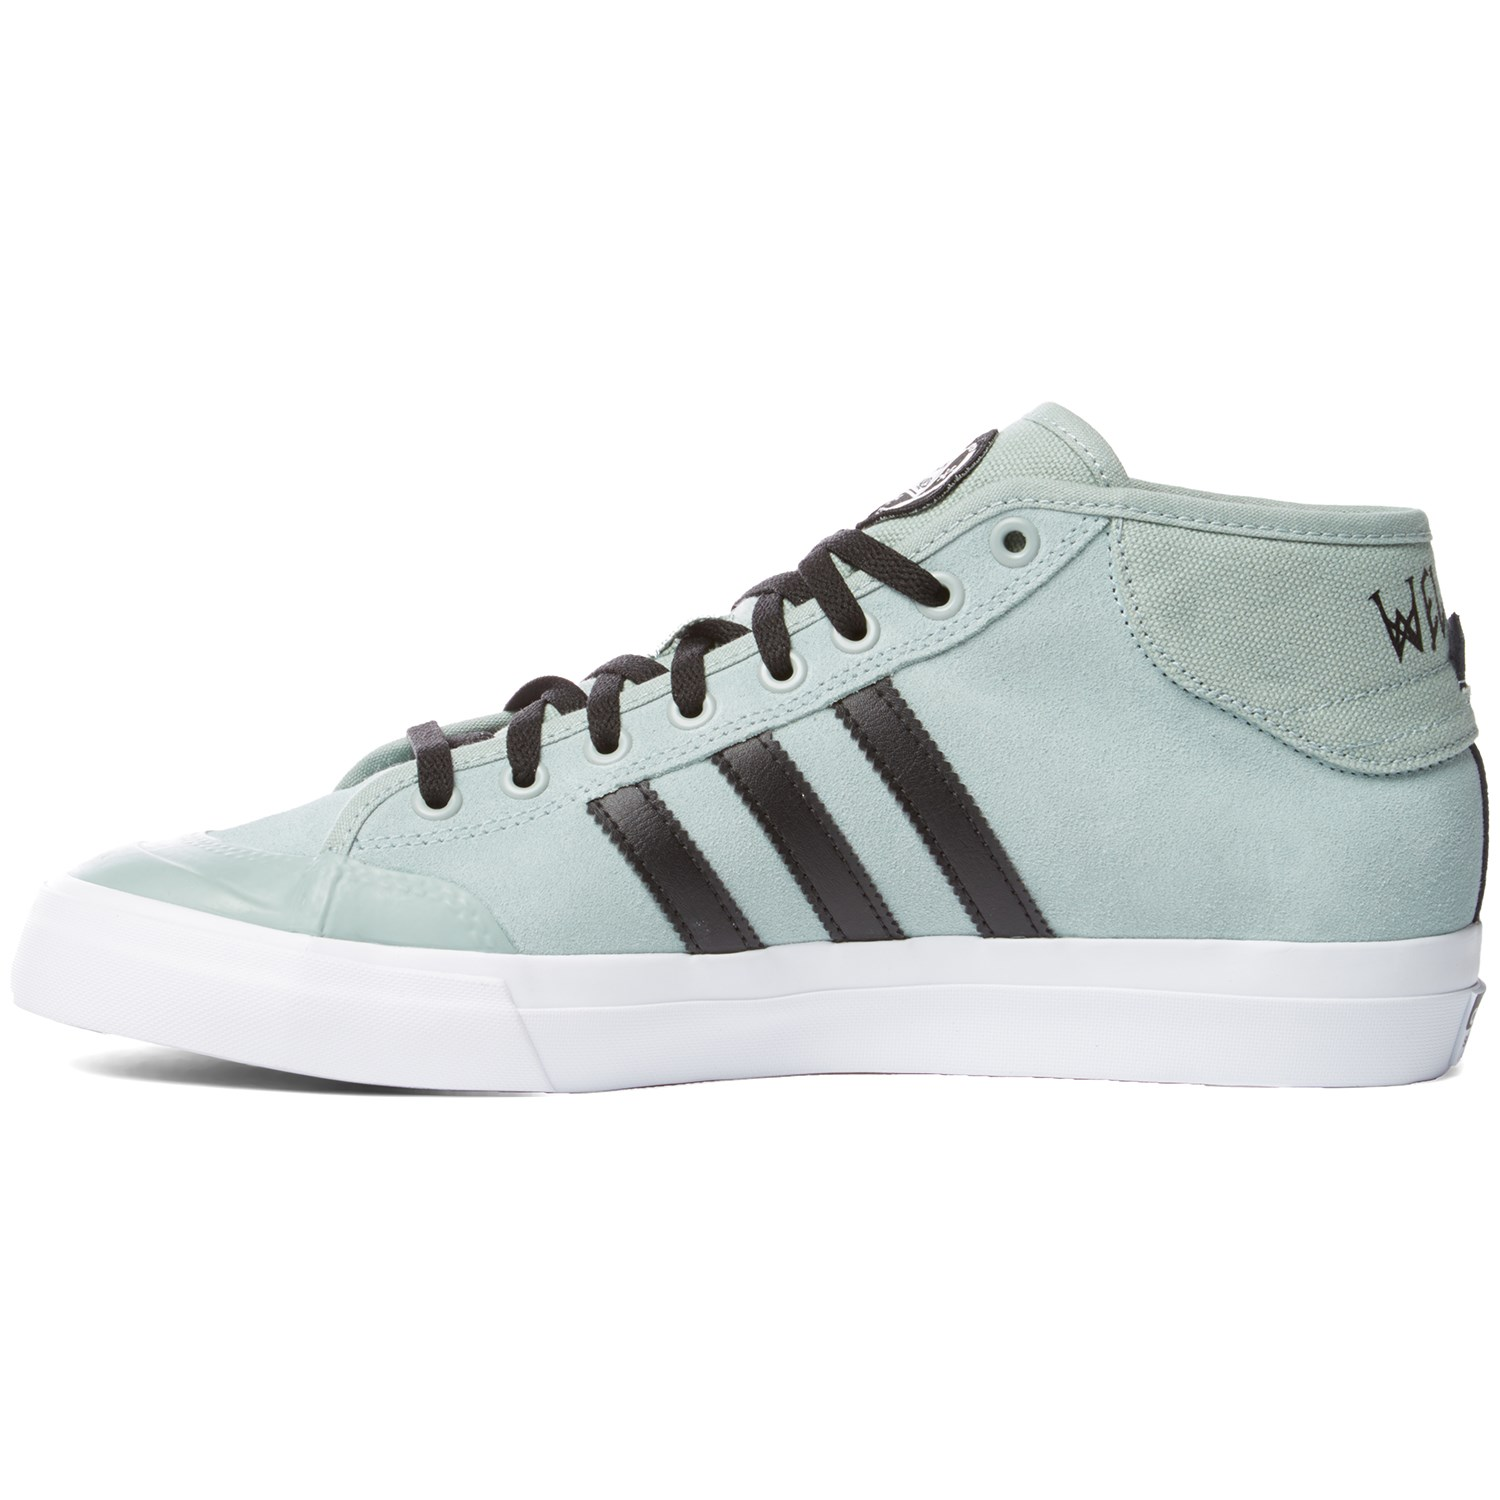 timeless design 7f4f2 58765 Adidas x Welcome Matchcourt Mid Shoes   evo